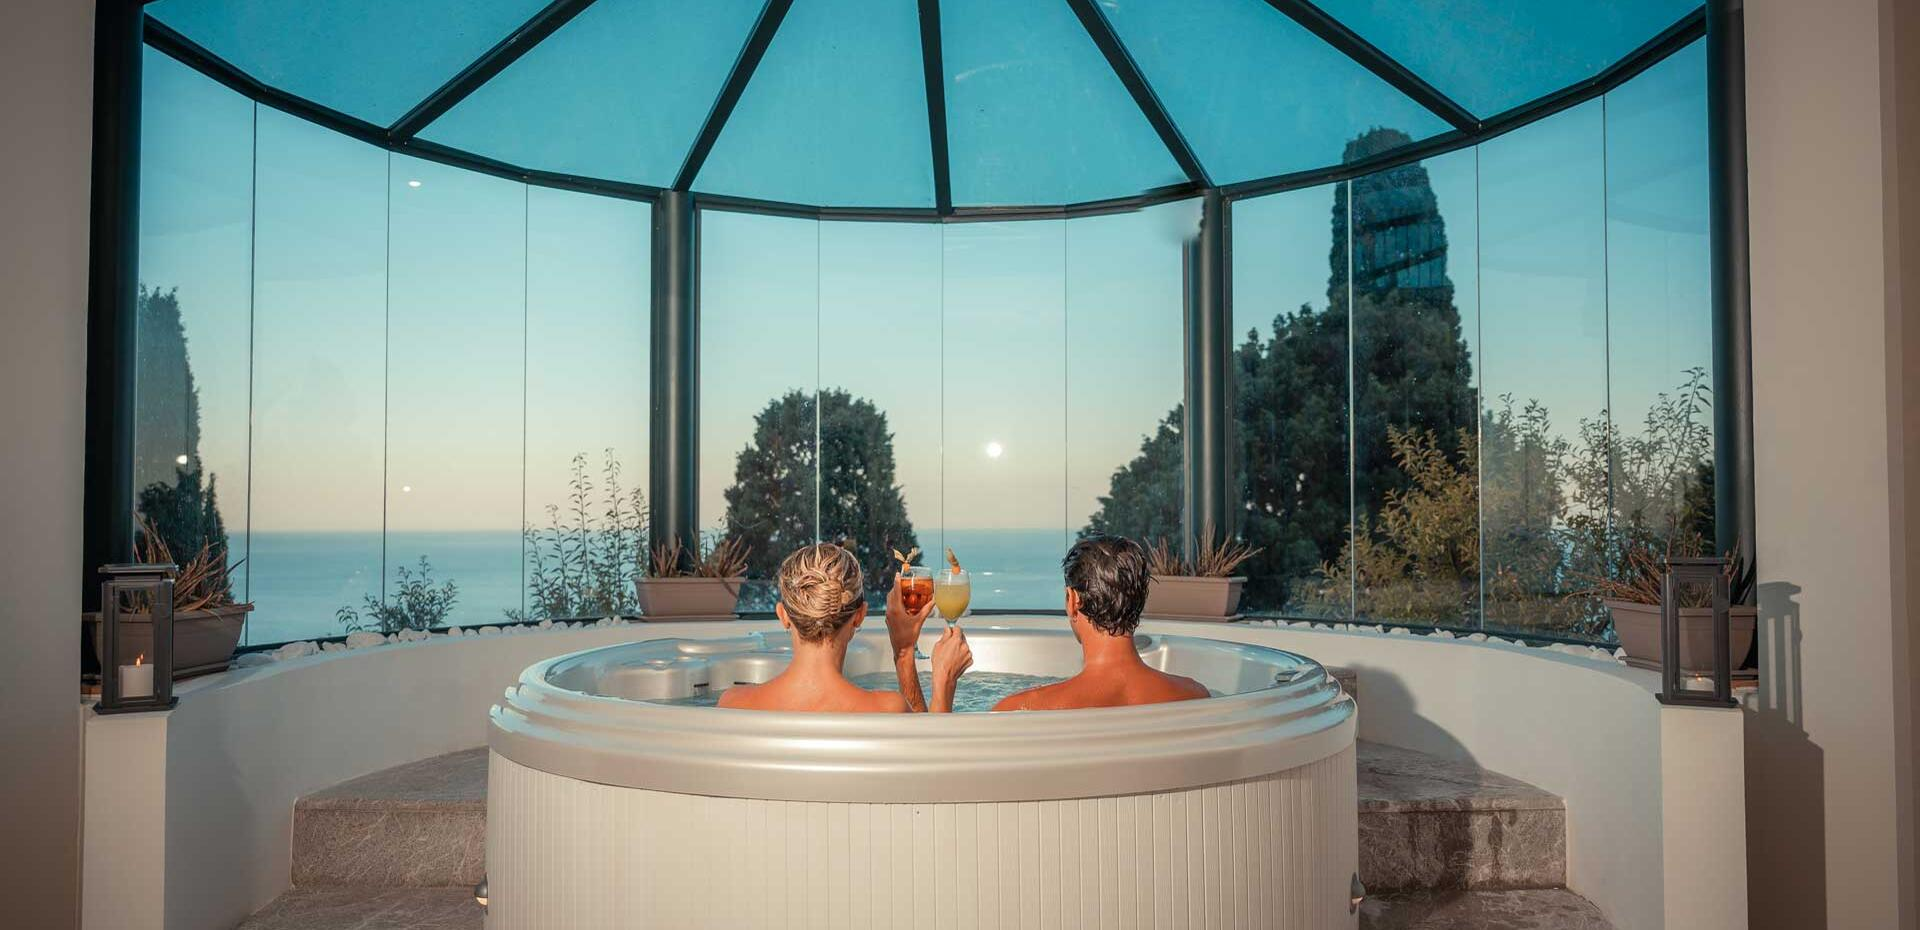 sanpietrotaormina en hotel-with-wellness-center 012